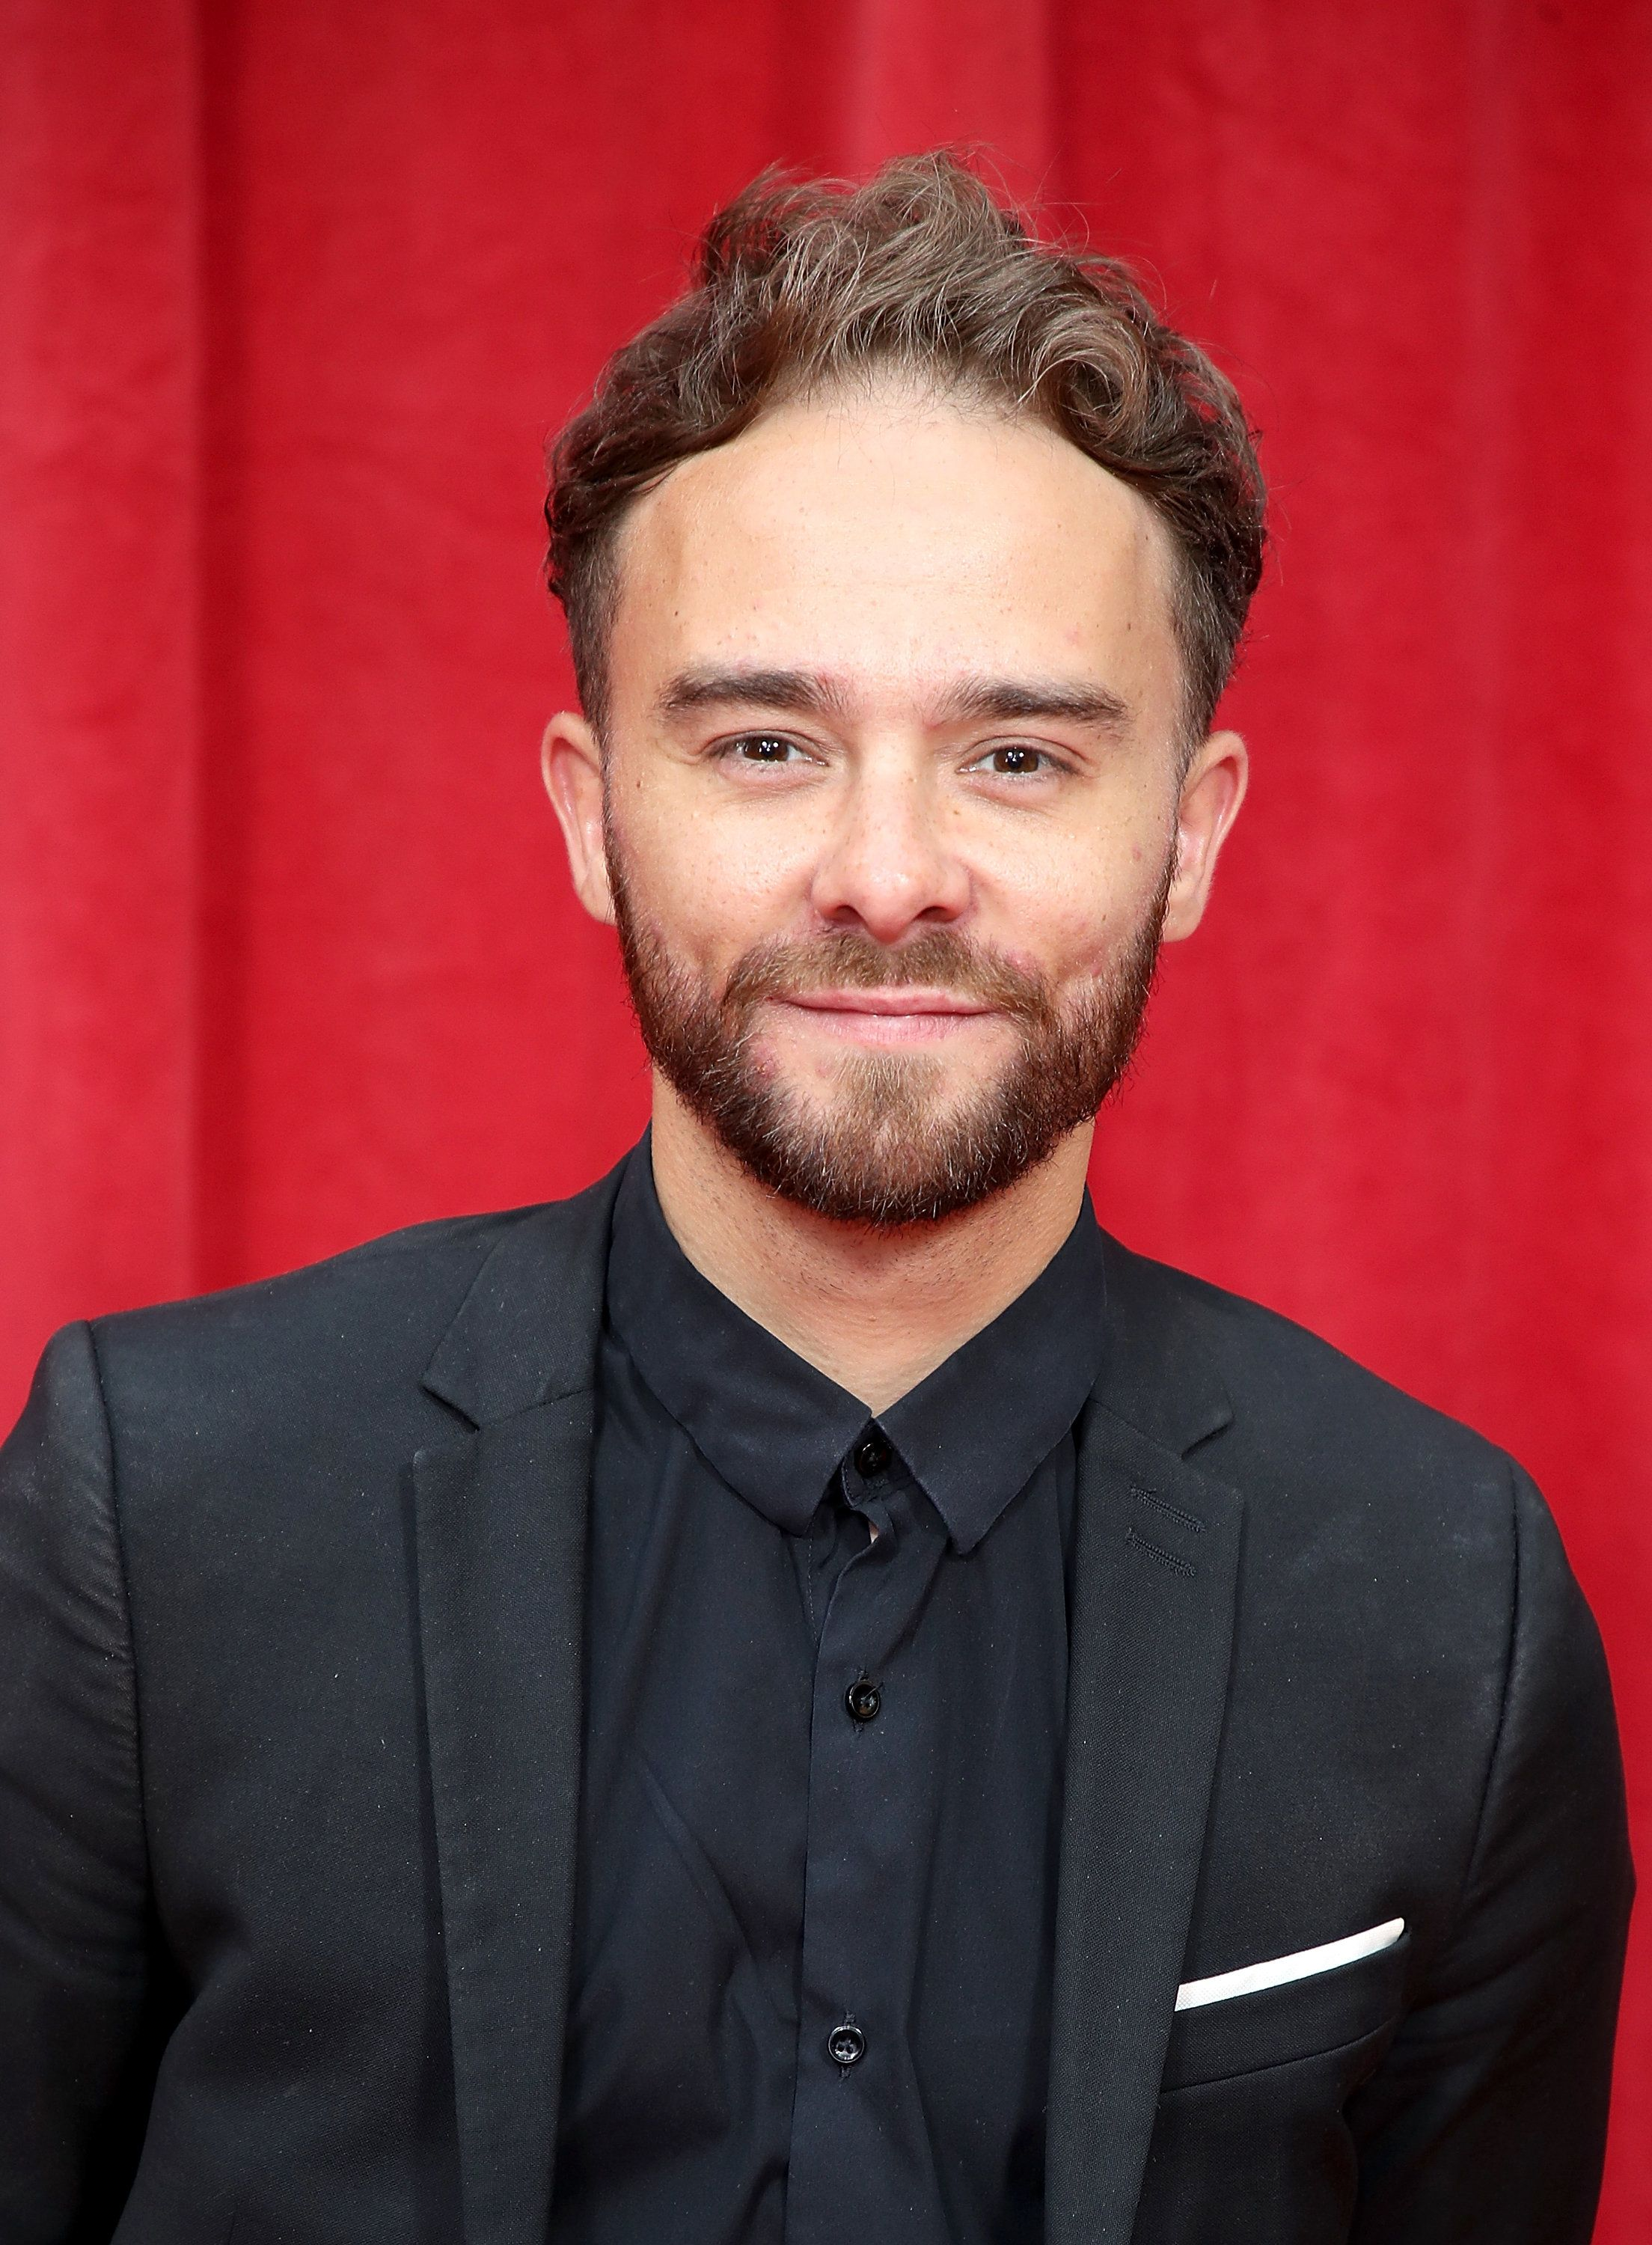 'Coronation Street' Actor Jack P Shepherd Hits Back At Twitter Critic Over Hair Loss